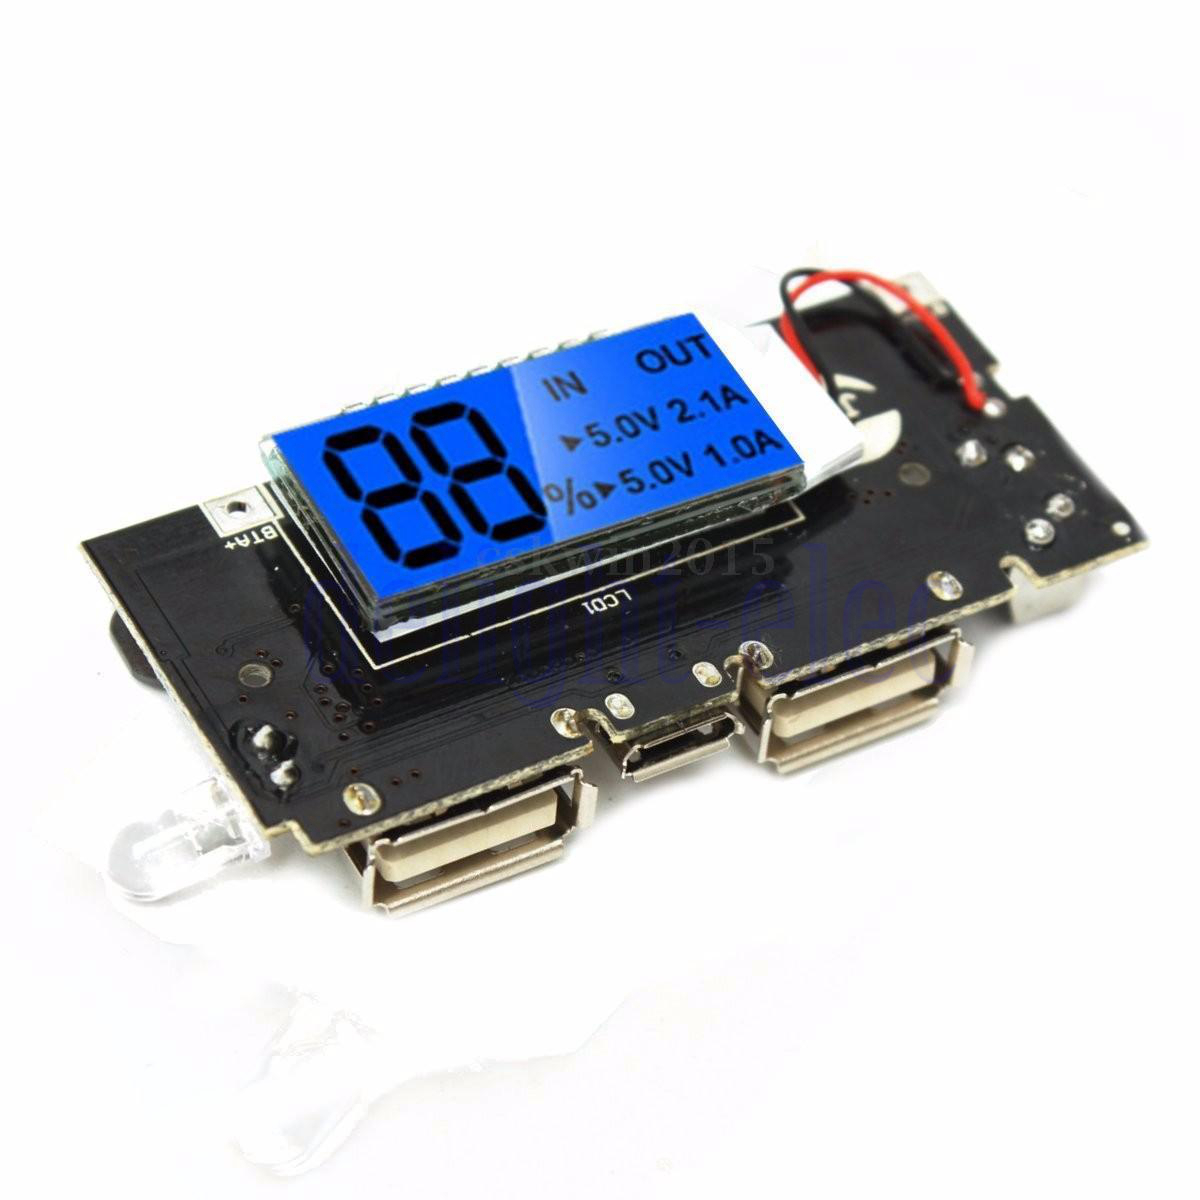 Battery Charger Circuit Diagram Battery Charger Circuit Circuit Board